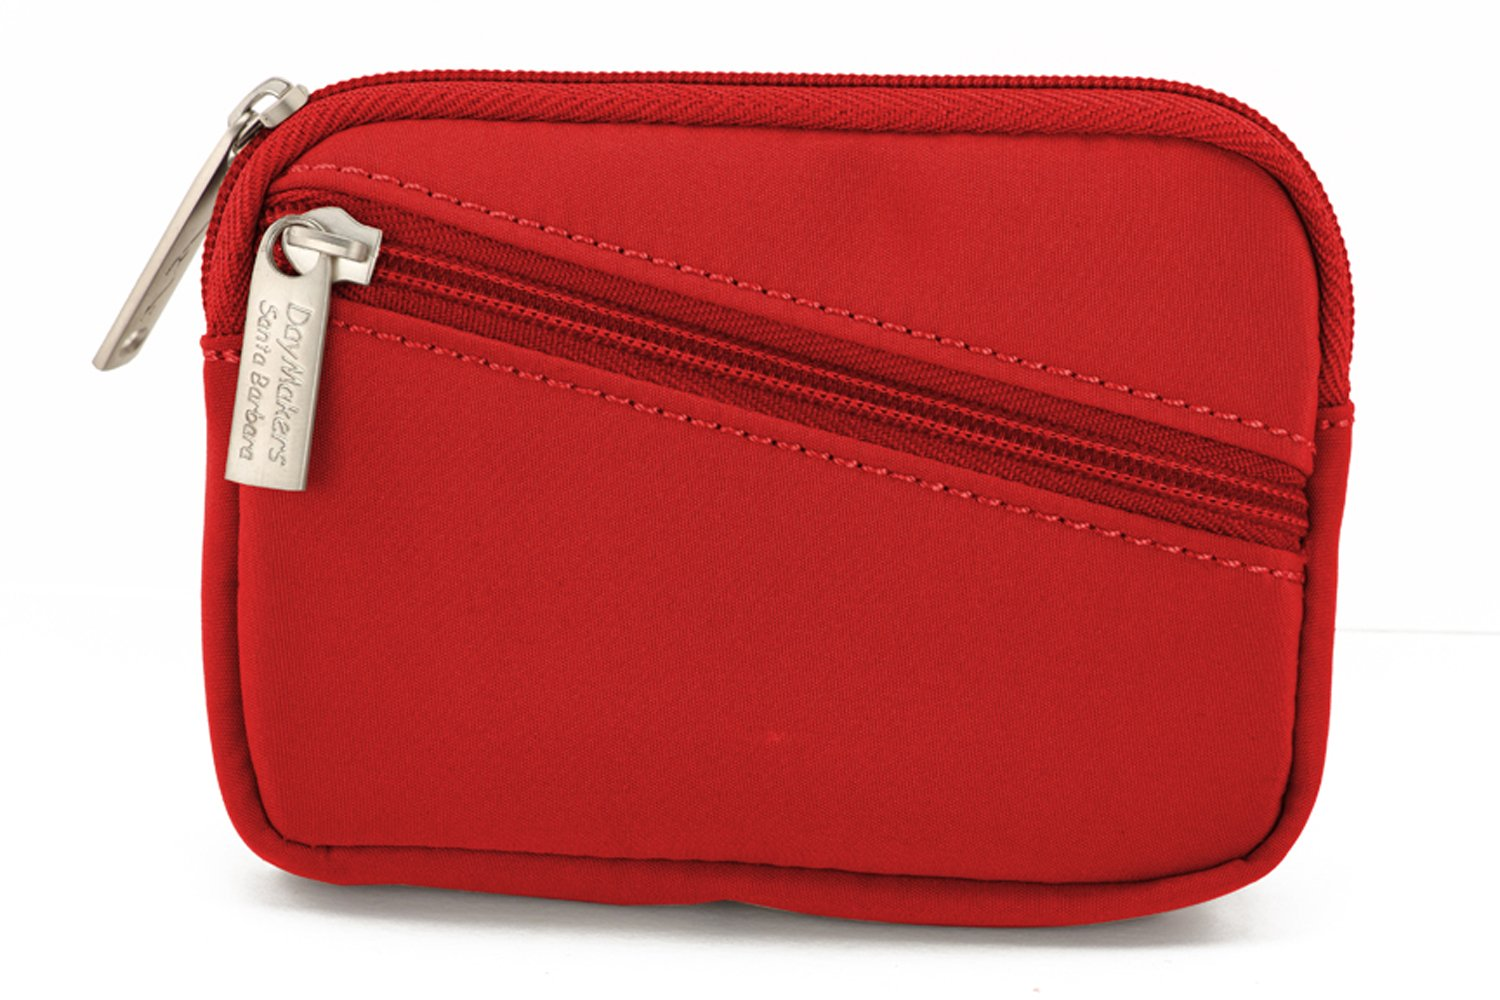 Be Safe The DayMaker Security Wallet with Diagonal Zipper